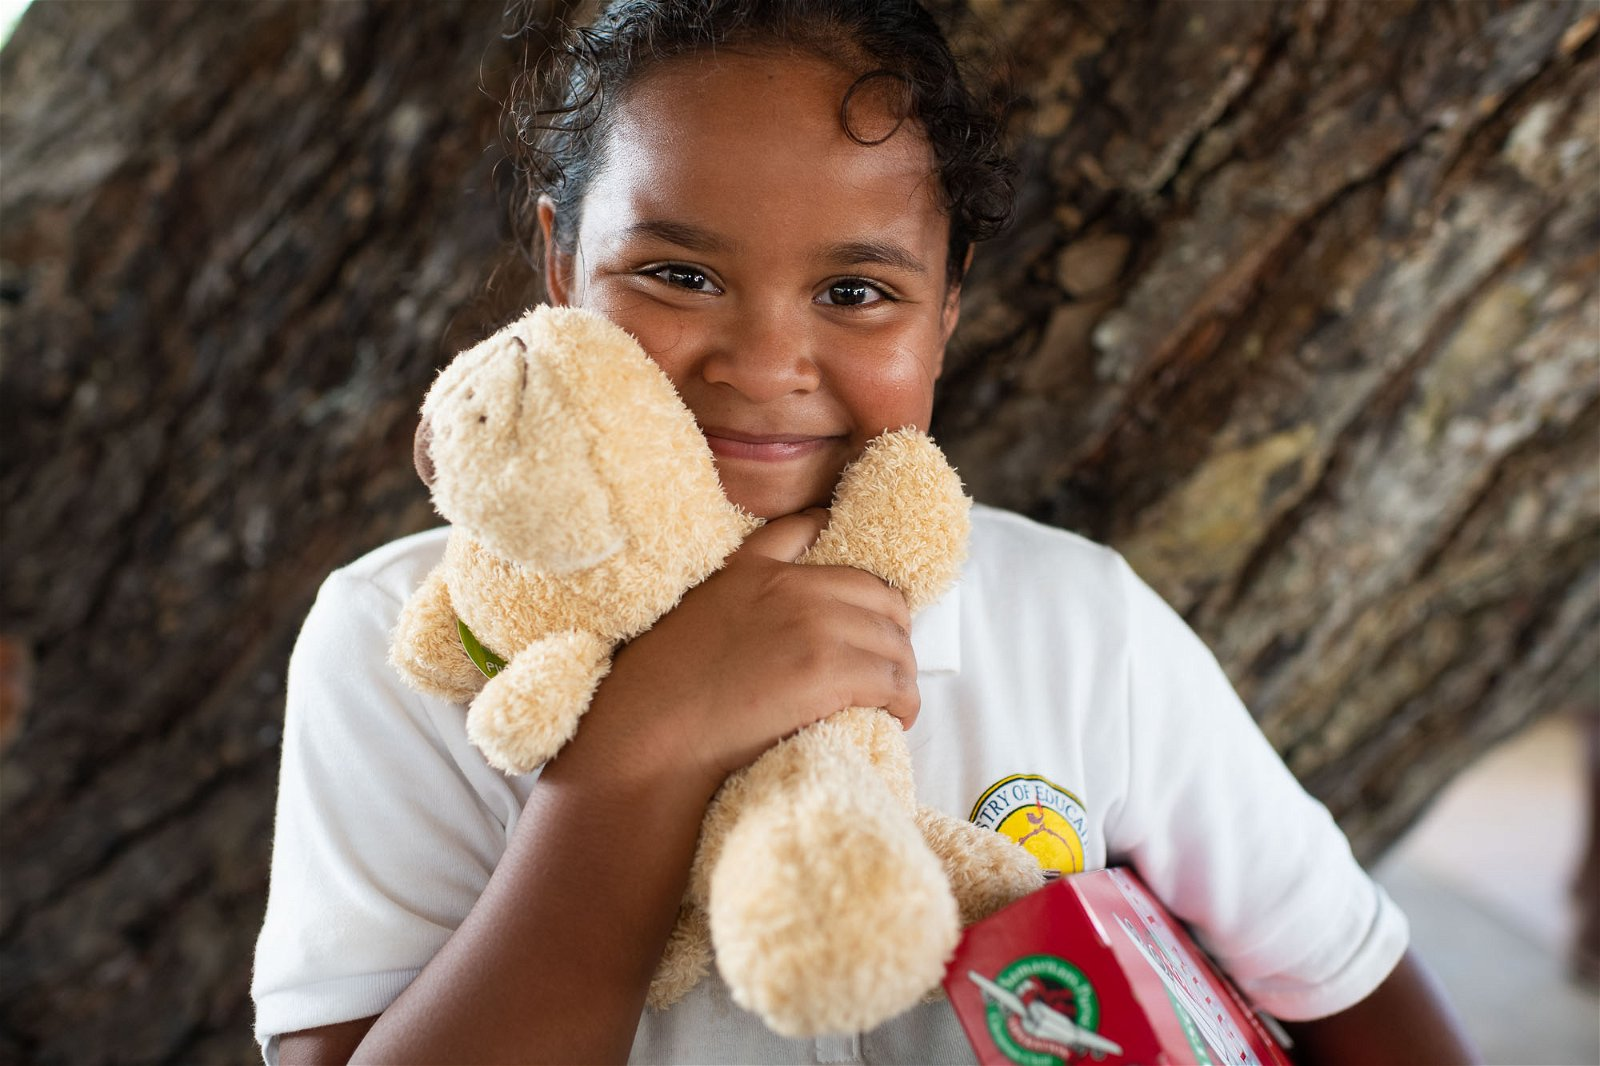 A GIRL ON NGIWAL TREASURES THE STUFFED ANIMAL SHE FOUND IN HER SHOEBOX GIFT.